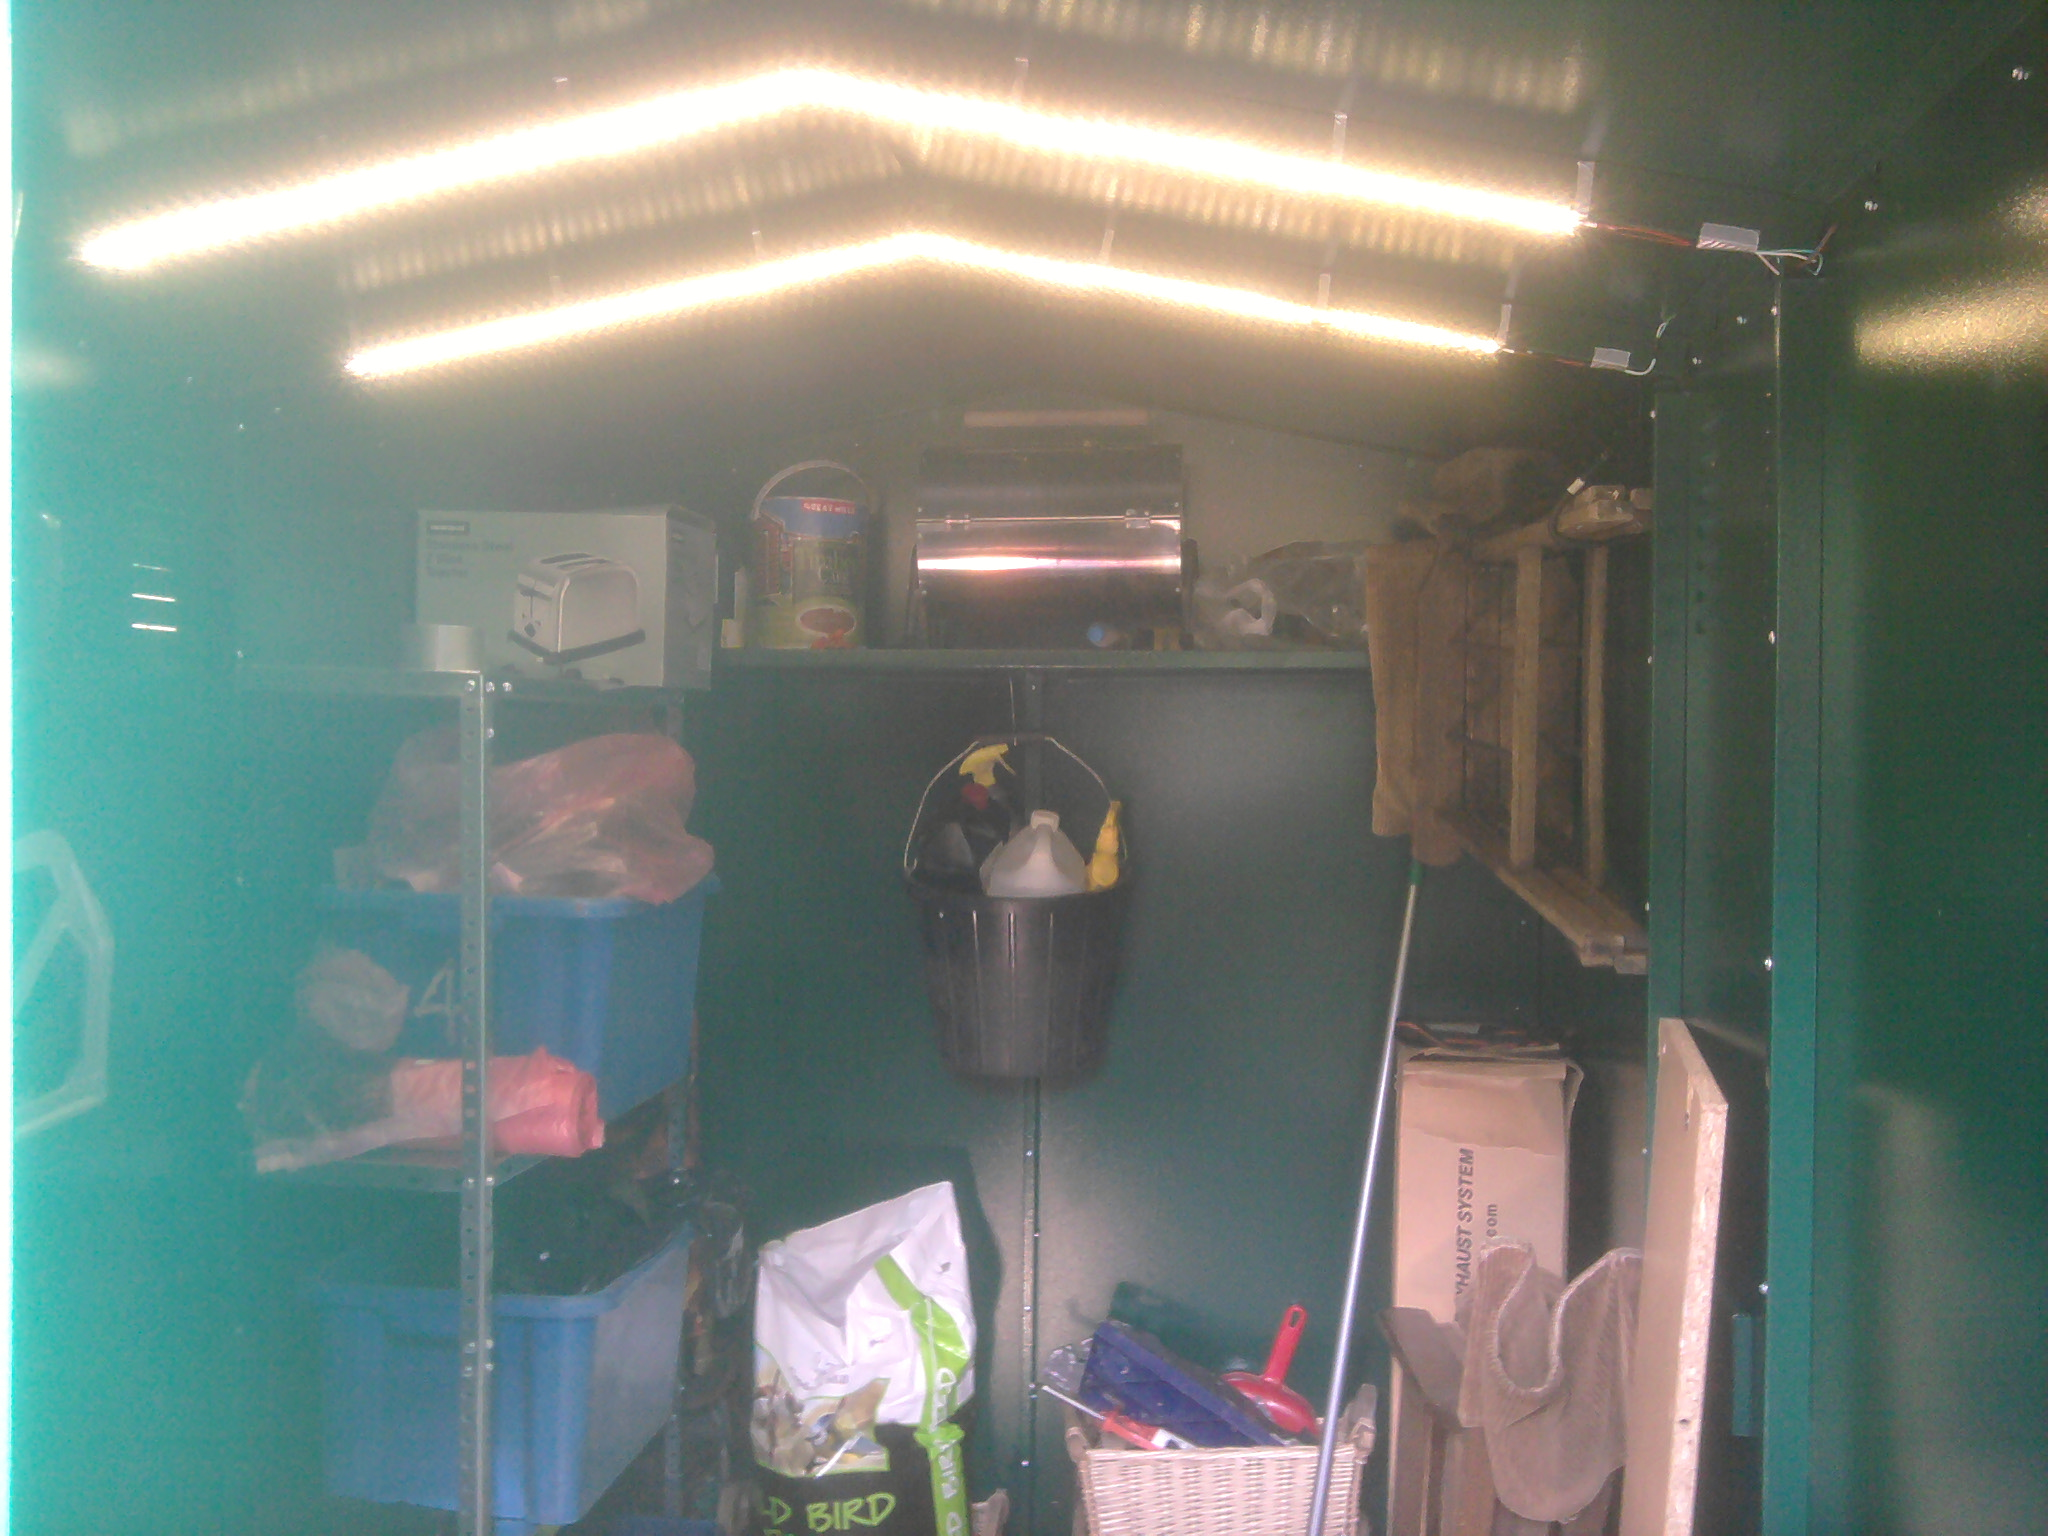 I wanted a garden shed that had to fit into a tight 3 sided space, so it was very important that it could be assembled from the inside. This unit has by far exceeded my expectations,  the accuracy of build is astounding  with every single screw hole linin